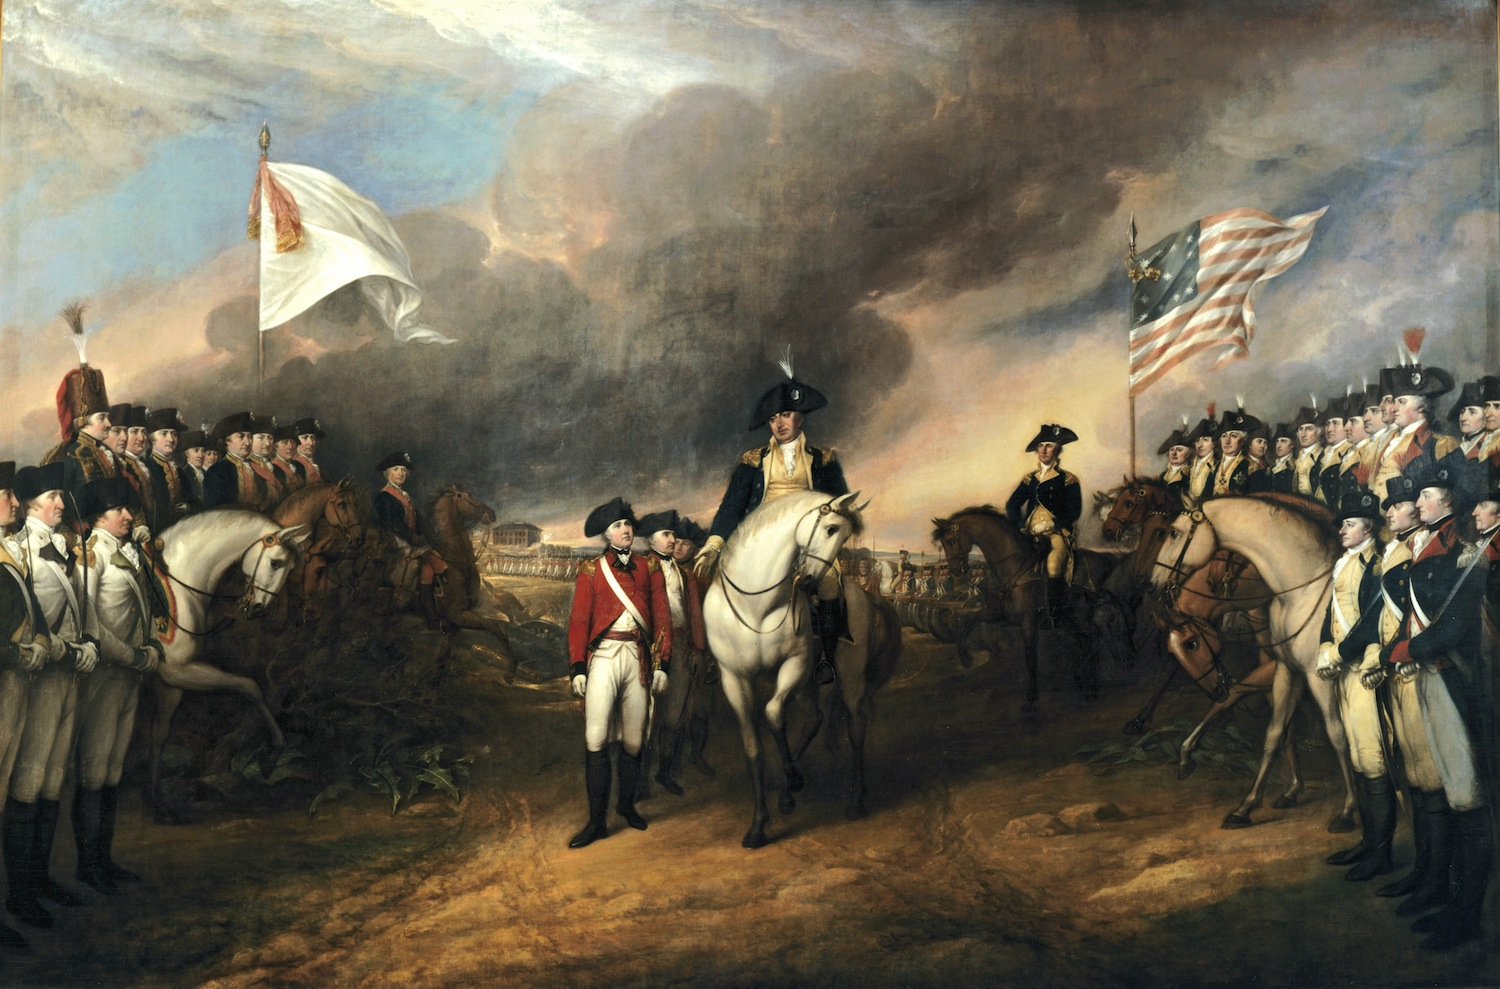 Founding Fathers Wallpaper The founding fathers colonial 1500x989